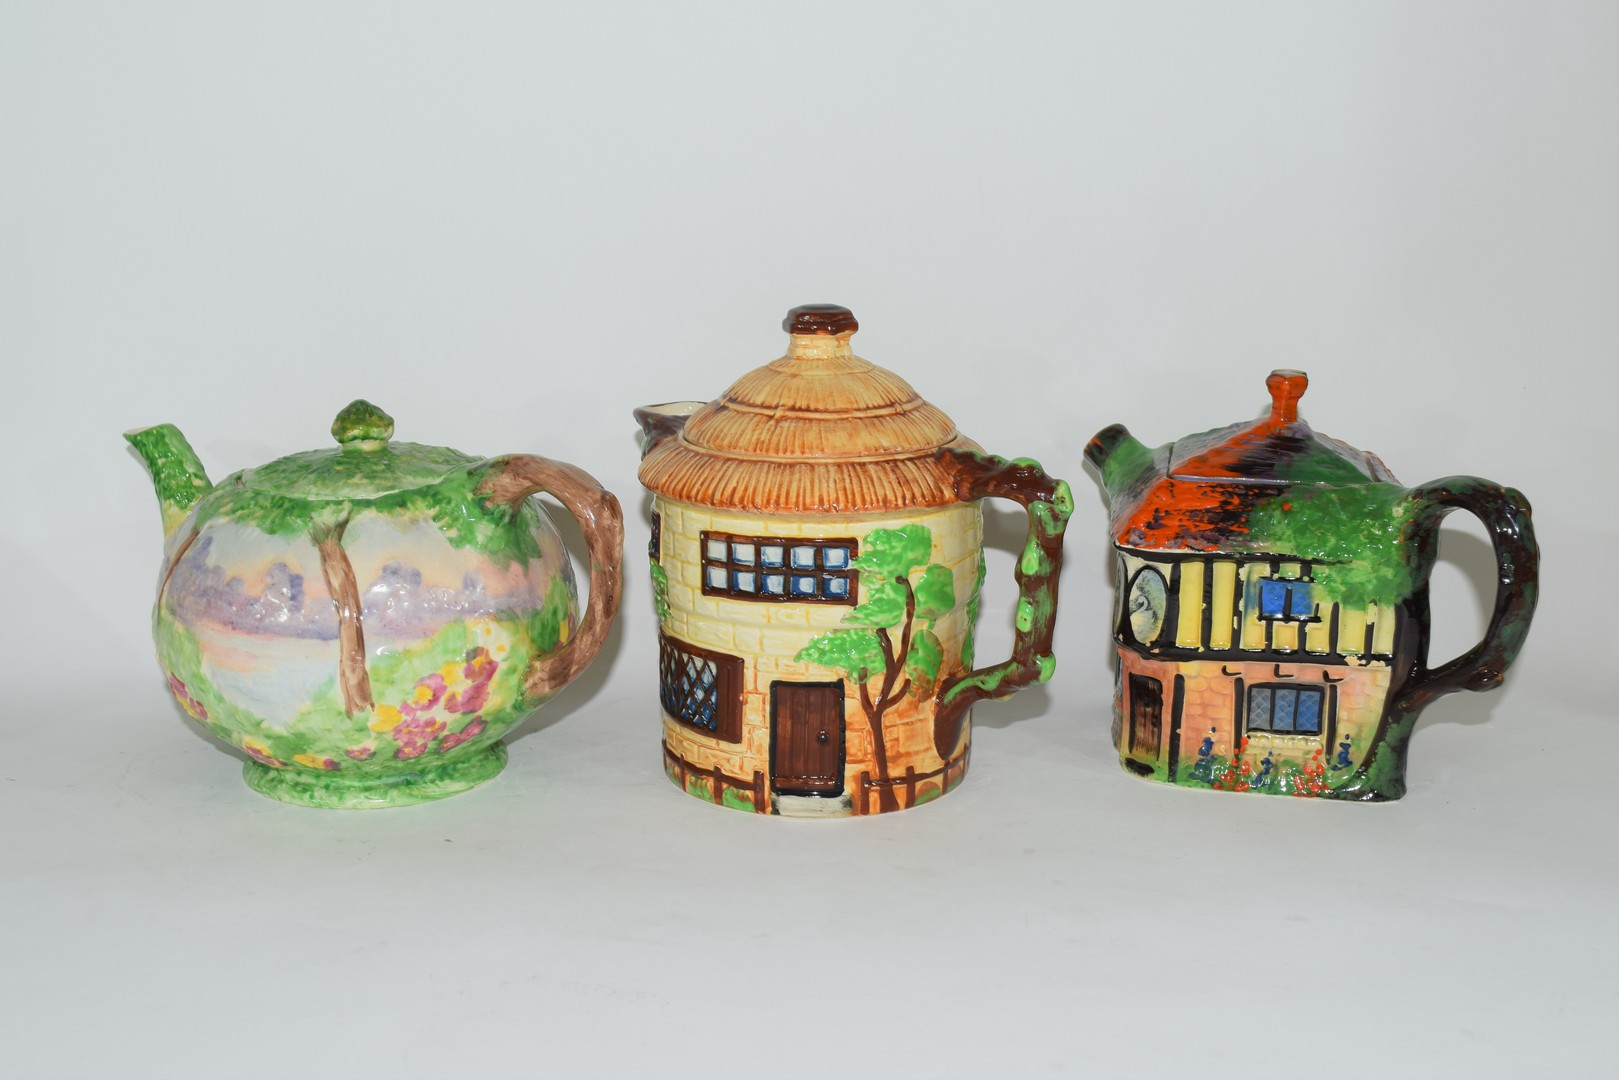 Group of mid-20th century cottage style tea pots - Image 3 of 4